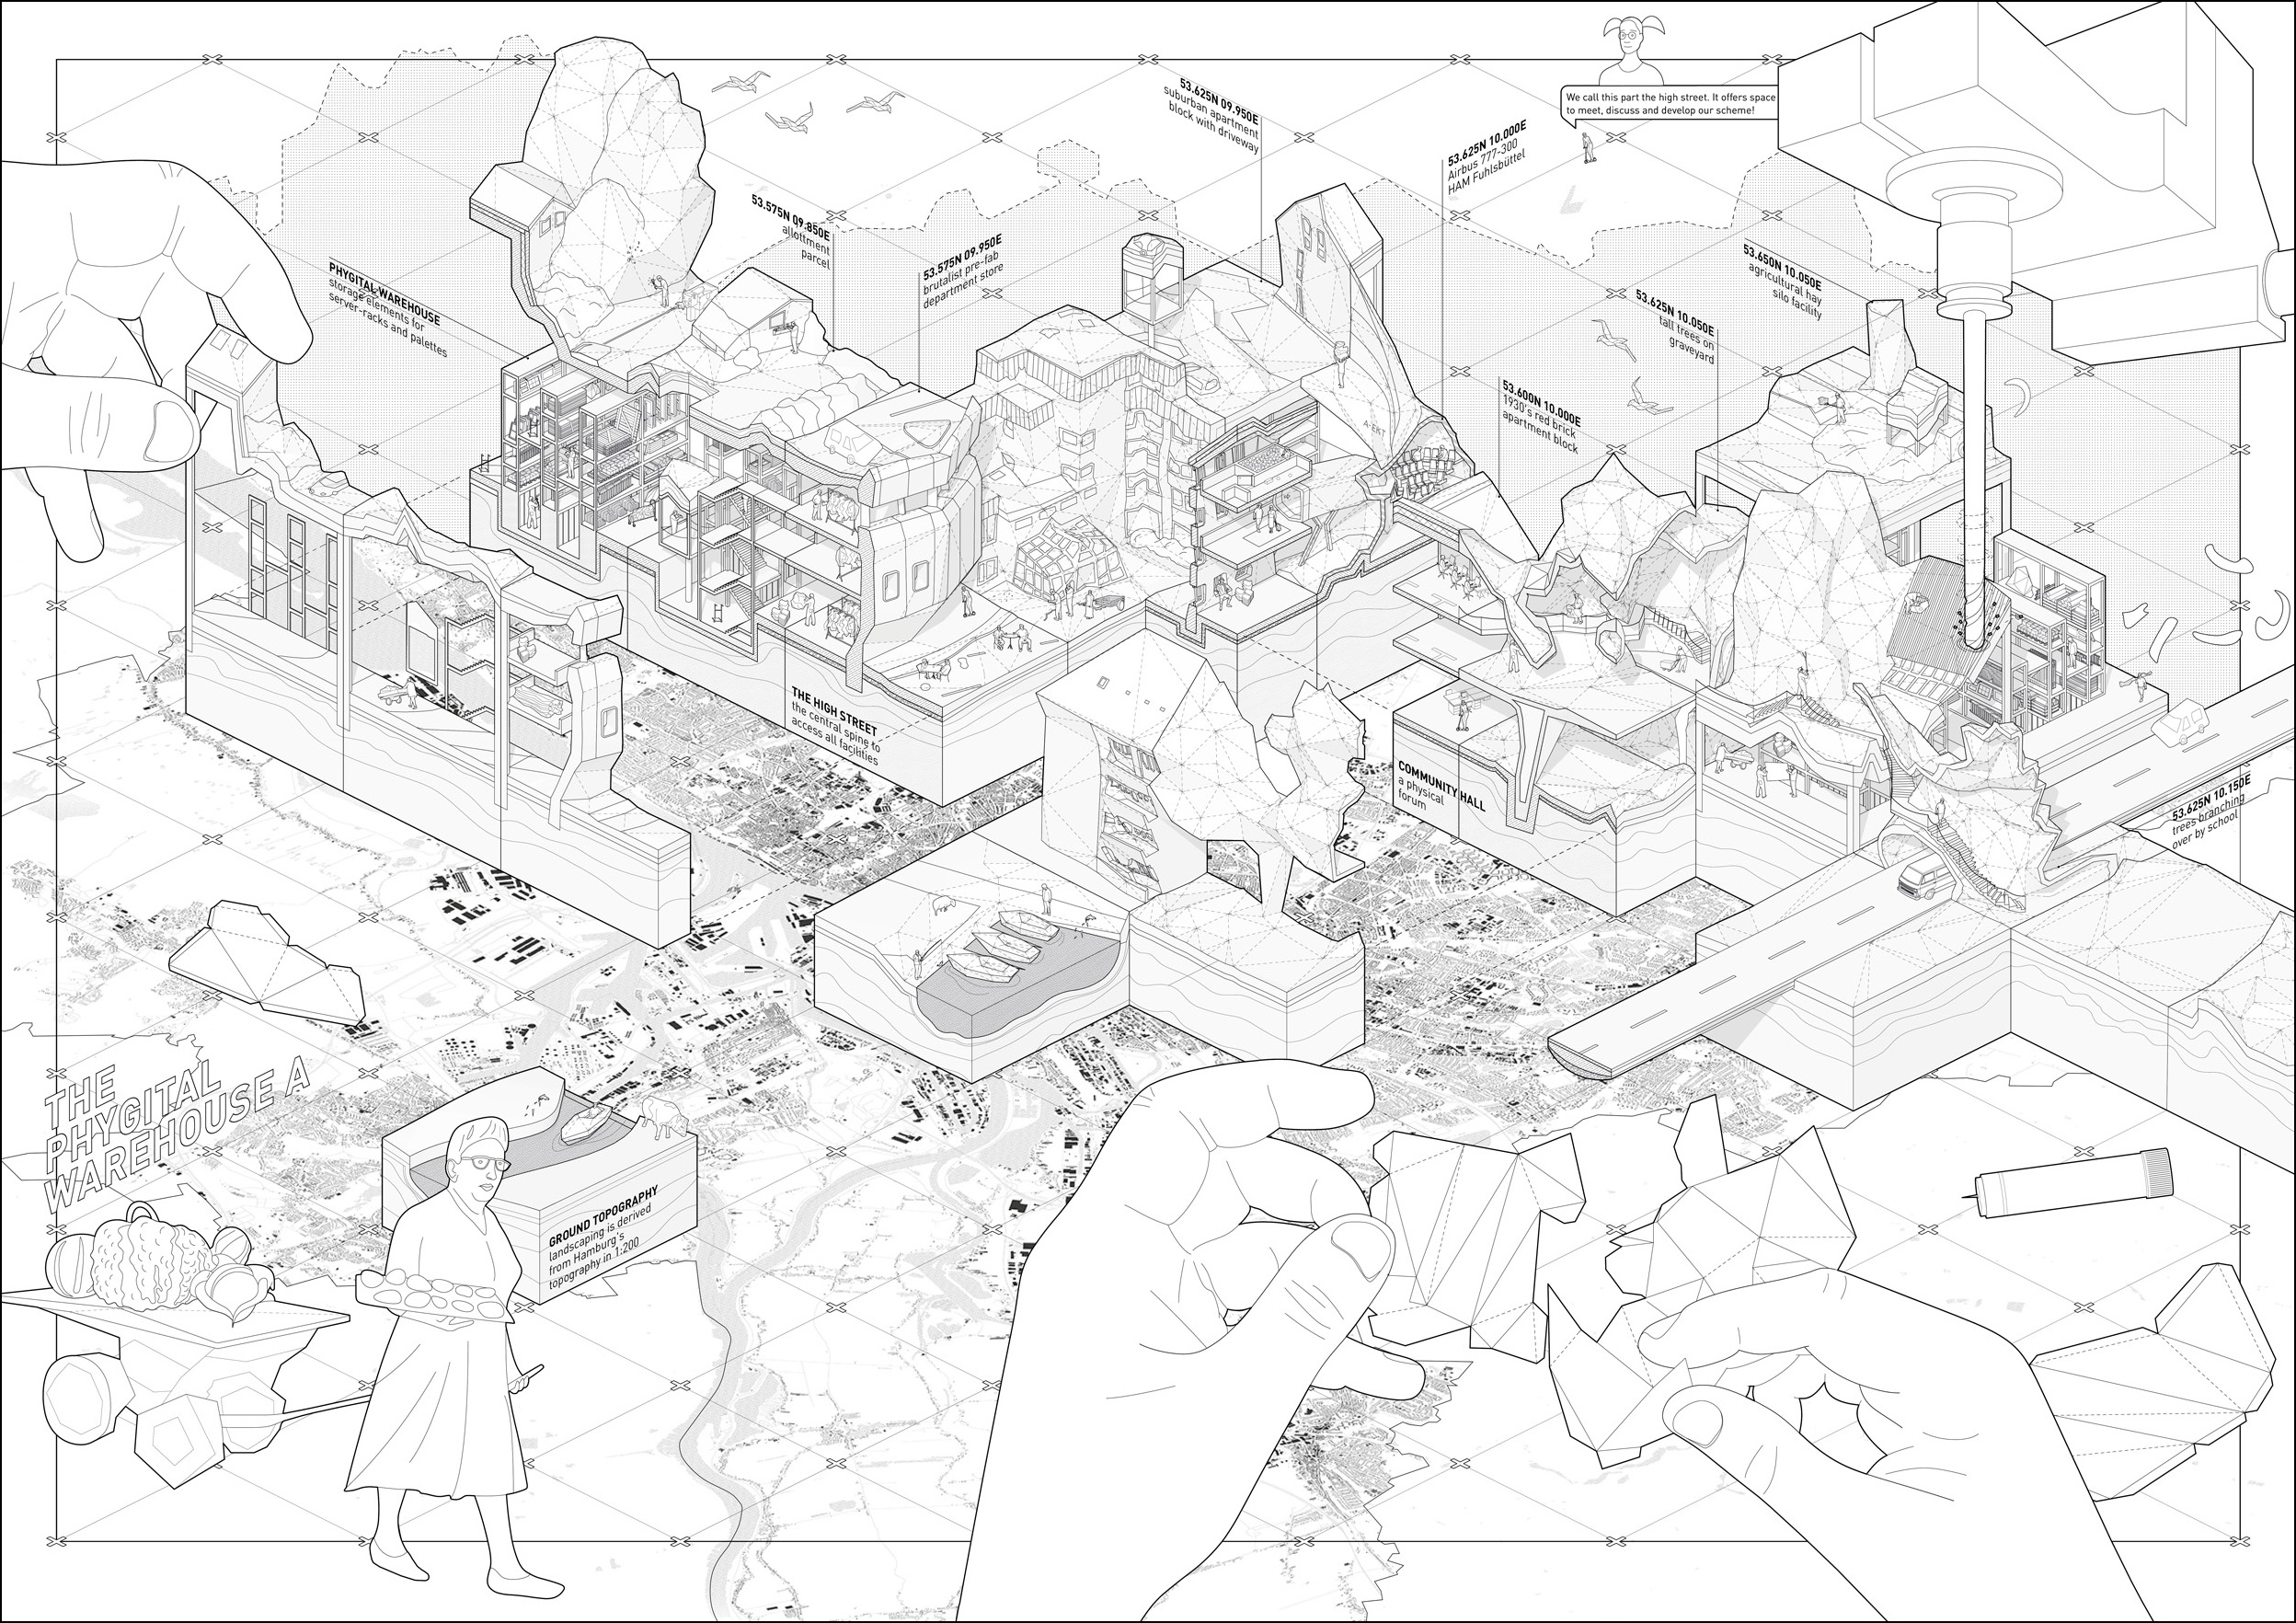 Low Res City – The Phygital Warehouse, Y5. Tutors: Prof.Laura Allen and Prof. Mark Smout .In my design proposal I focus on the 'Phygital Warehouse'. Its program accommodates physical and virtual storage for the 'game' resources, as well as providing spaces for the community in which meta-decisions about the game and its mechanics can be discussed and made. The design language is informed by 80 samples of Hamburg that are mined from Apple Maps. Using photogrammetry on screenshots allows me to obtain low-resolution pointclouds of the whole city. Pinpointing where to 'grab' data, the intersections of a coordinate grid overlaying the city perimeter limits my agency as curator. The 15 x 15 meter sized 'specimens' become true representatives of the city fabric – amongst others containing bits of crop elds, of the Autobahn, of a brutalist warehouse (48). These samples are used as enclosure of the required spaces as well as 1:1 testbeds for the laypersons to test Realized Augmentity as delivery method. Once the building is completed, the islanders are prepared to take over their island – having actually built every bit of a city by themselves.